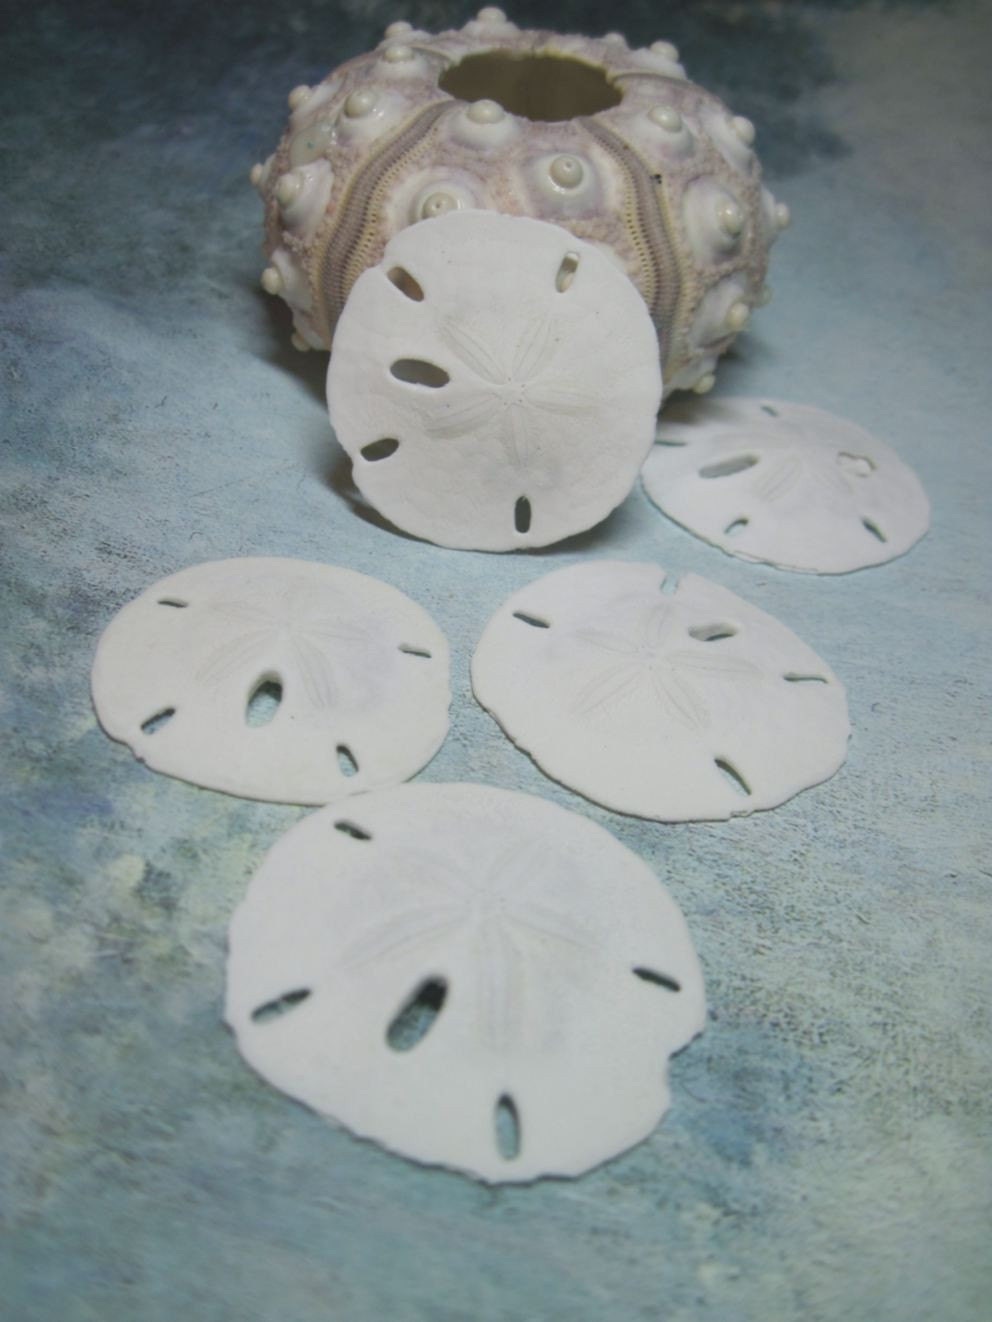 Beach Sand Dollars 1 3/4 inch Sandollars or Beach Wedding